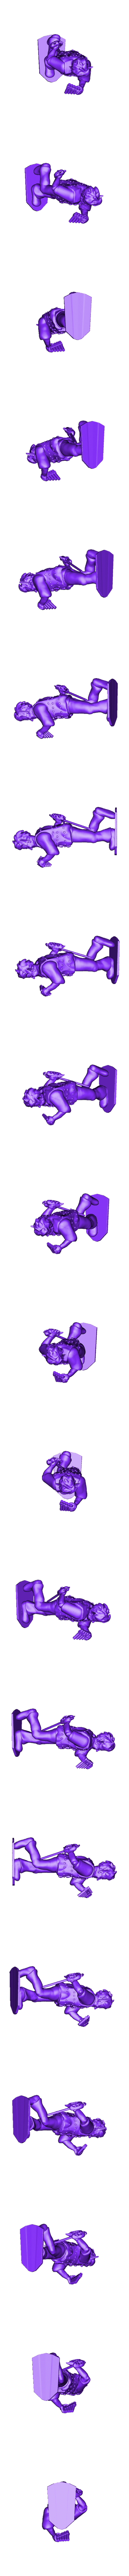 Shake_no_horns.stl Download free STL file Changeling Rogue/Bard without horns • Model to 3D print, Pza4Rza